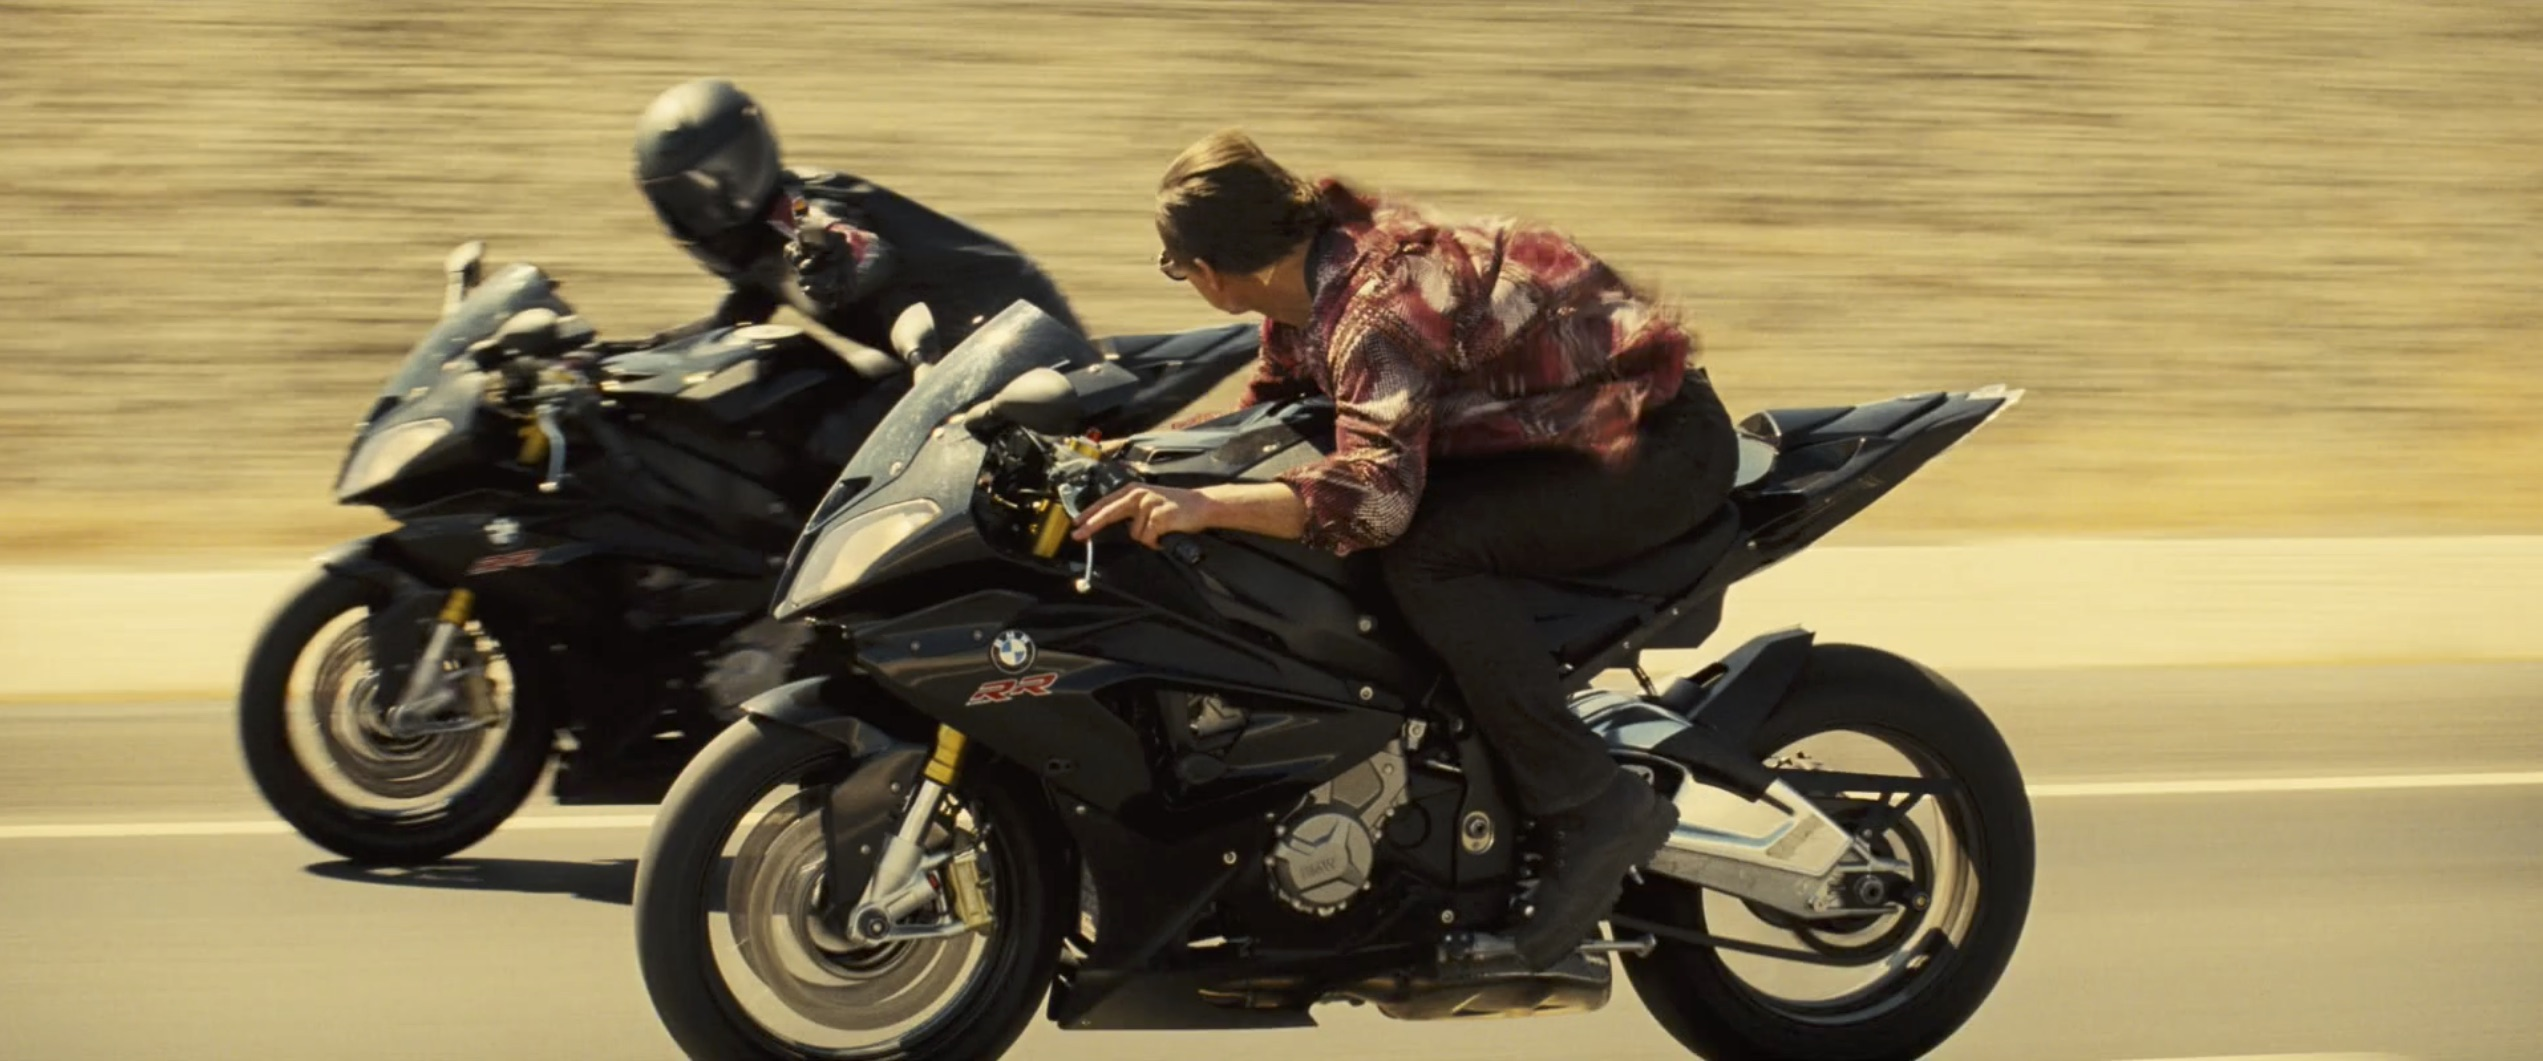 Mission Impossible: Rogue Nation motorcycle racing